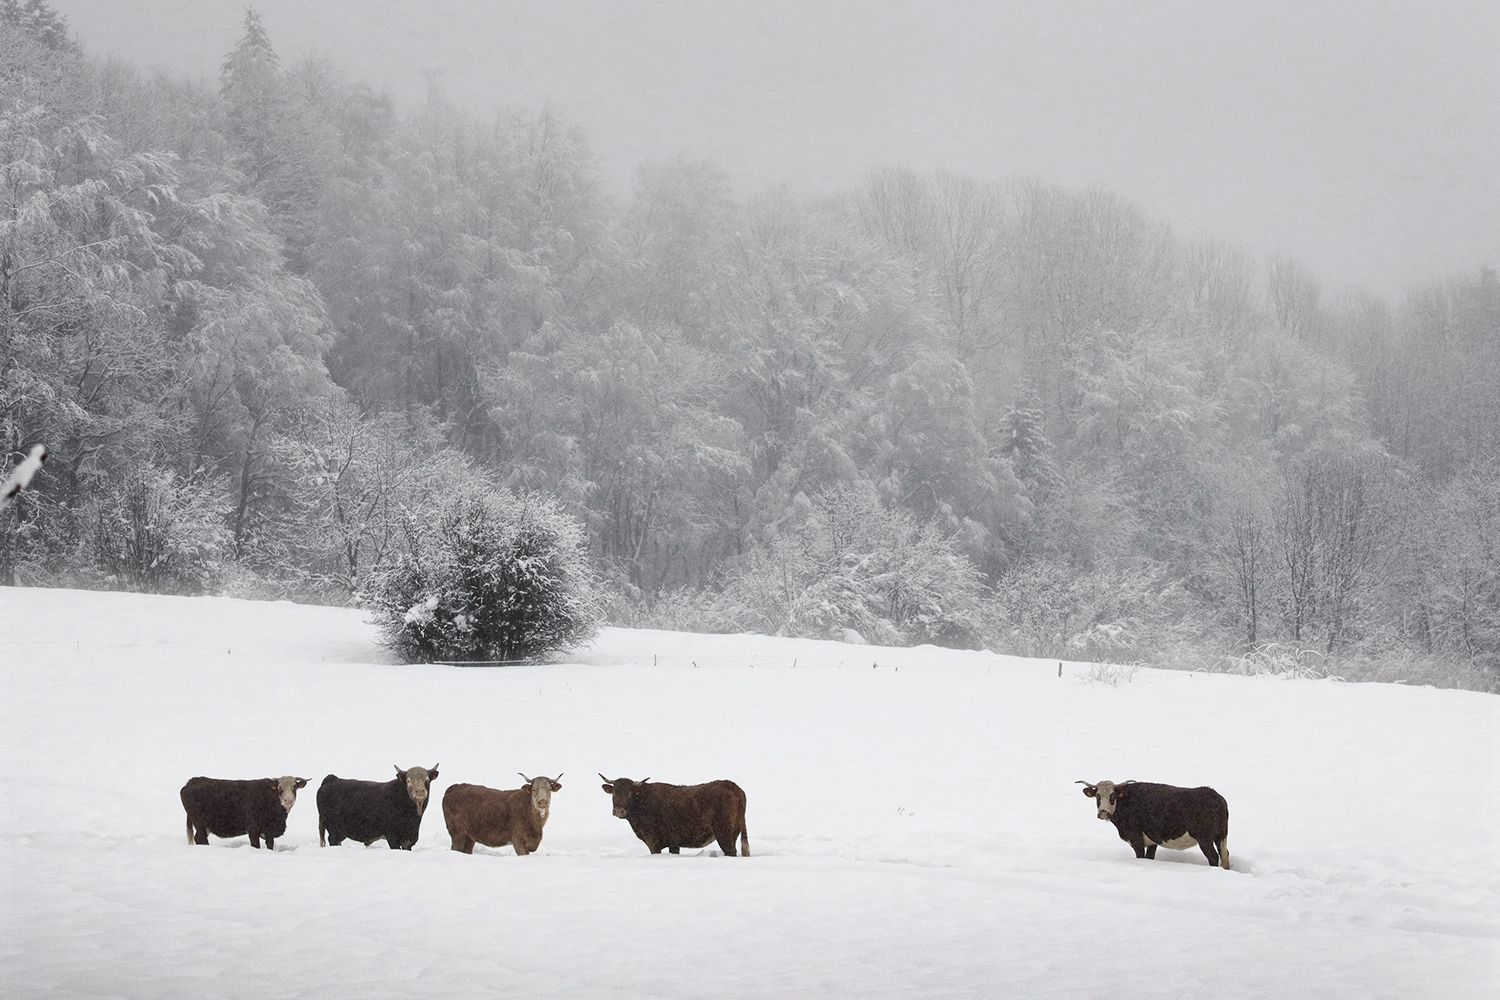 Cows in the snow,Christophe Jacrot,Photography